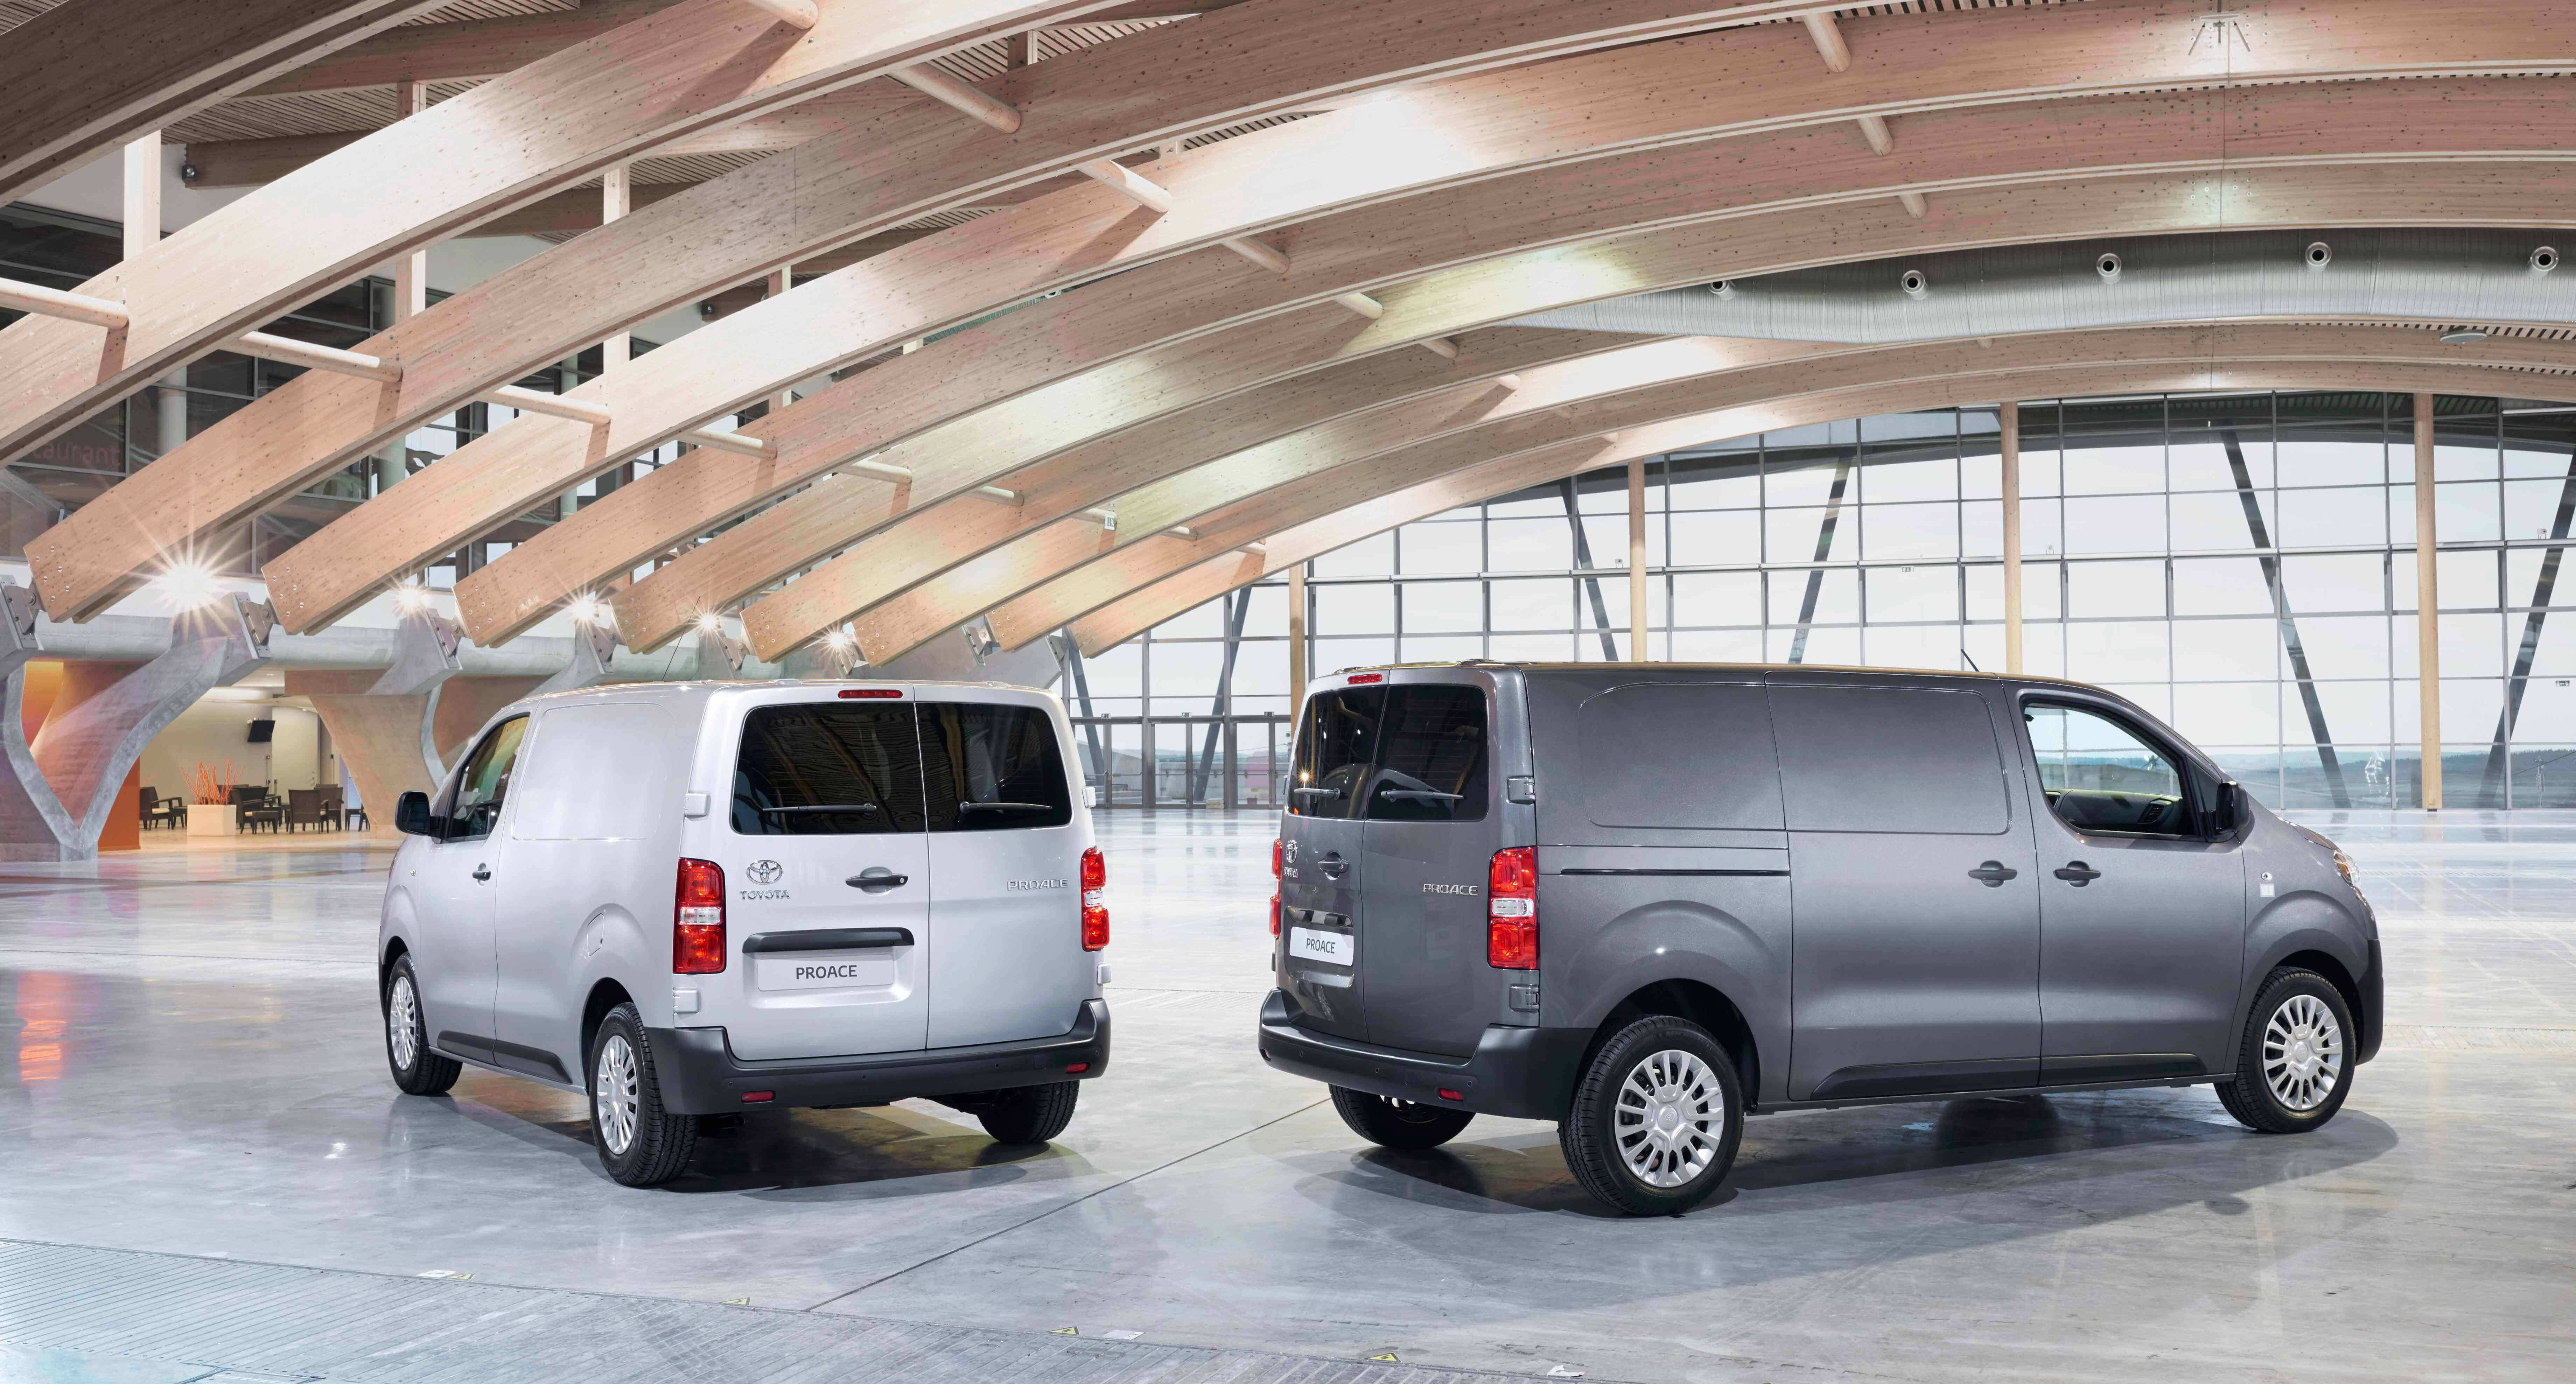 Proace Models Amp Features W R Davies Toyota Telford